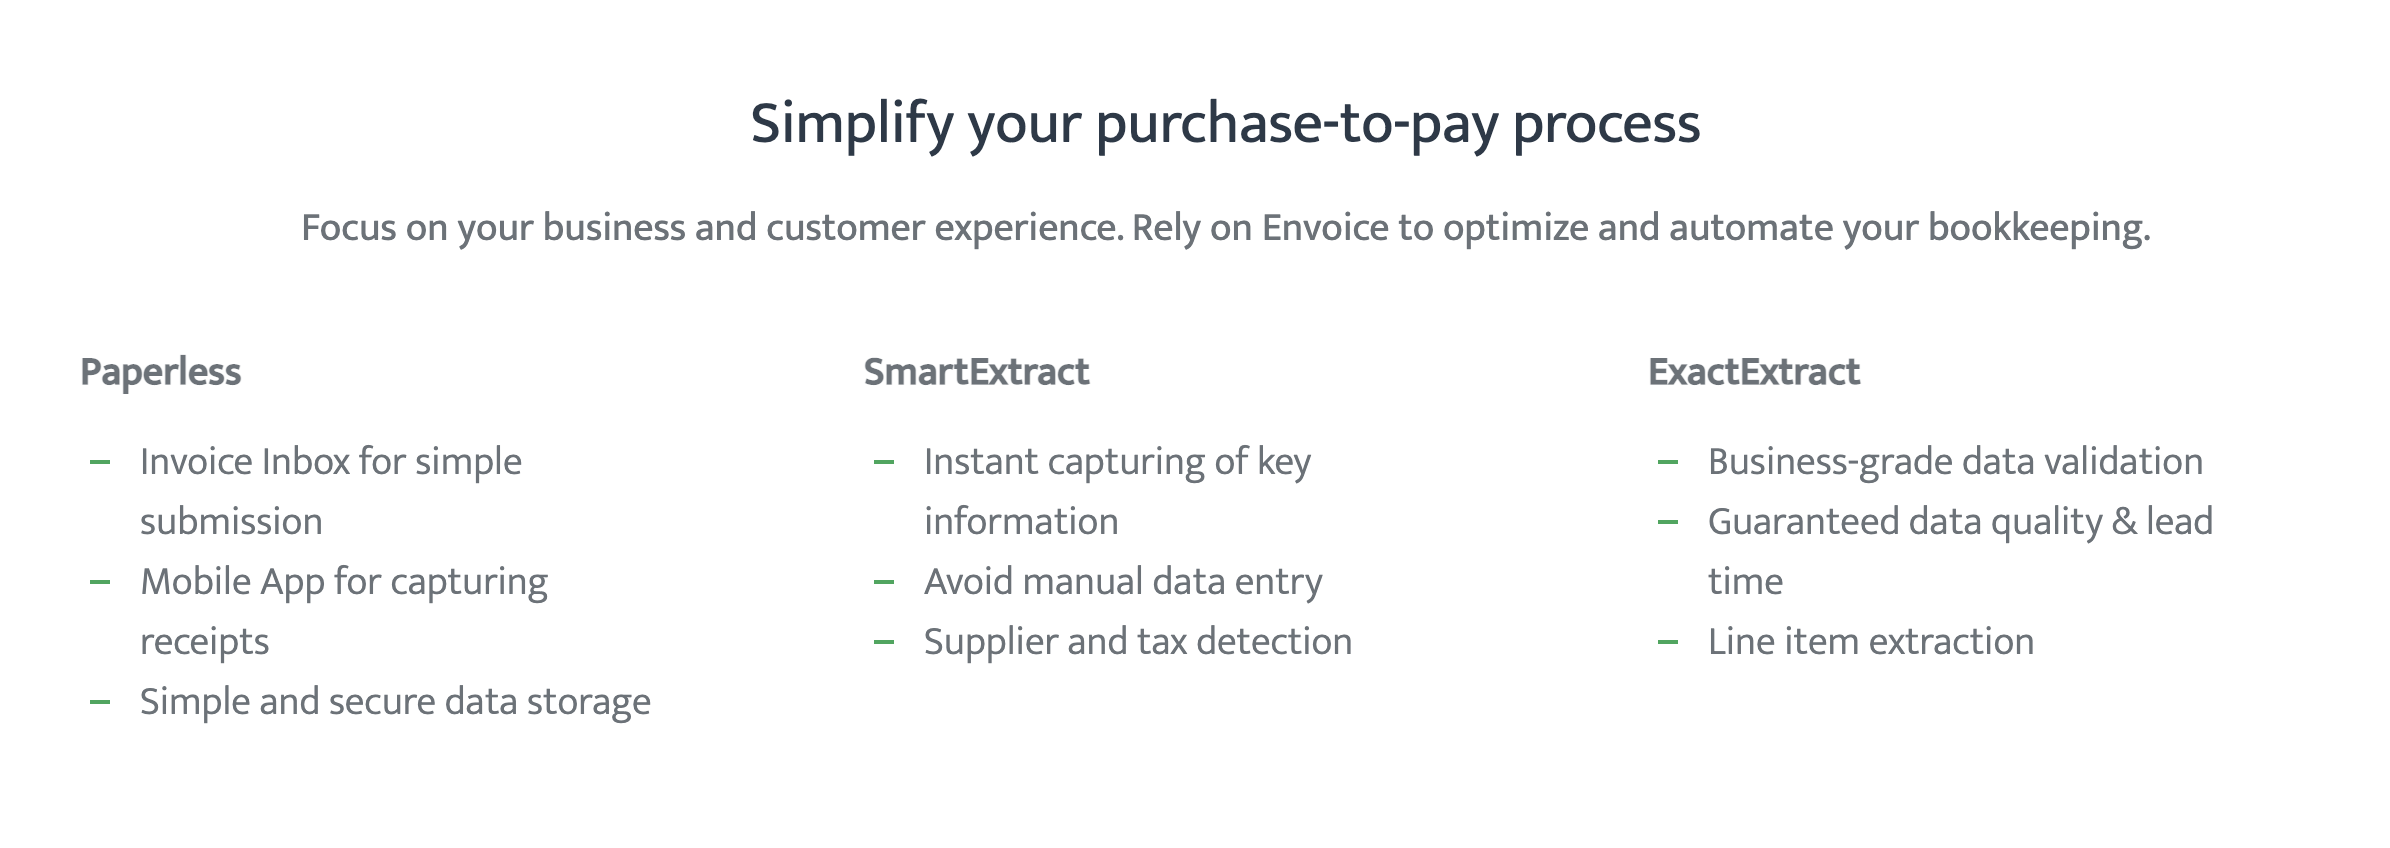 Simplify your purchase-to-pay process